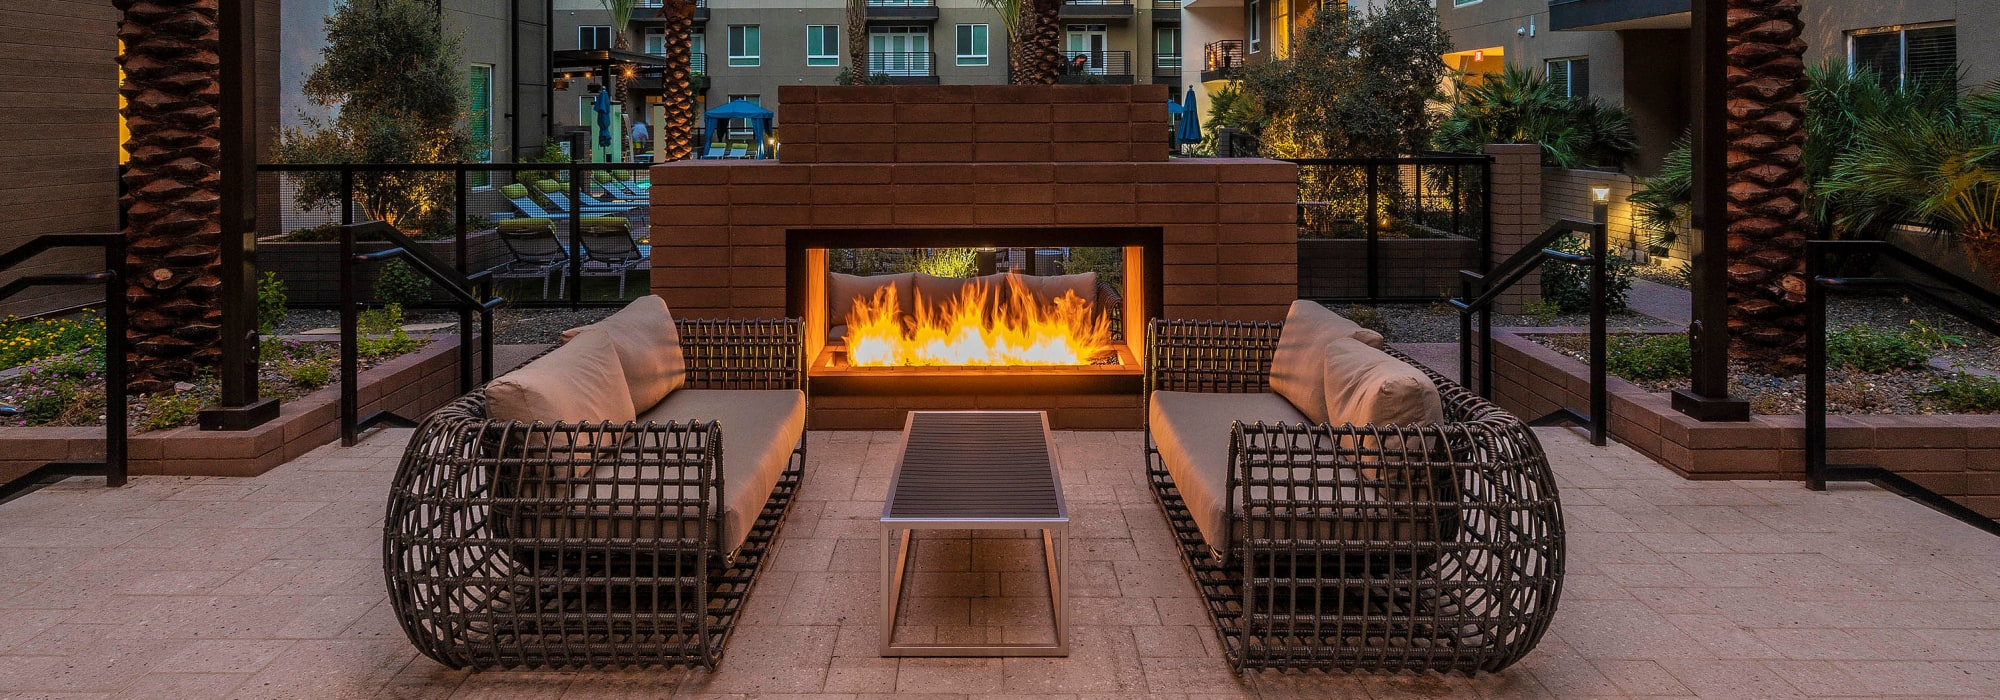 Fire pit in the evening at Carter in Scottsdale, Arizona